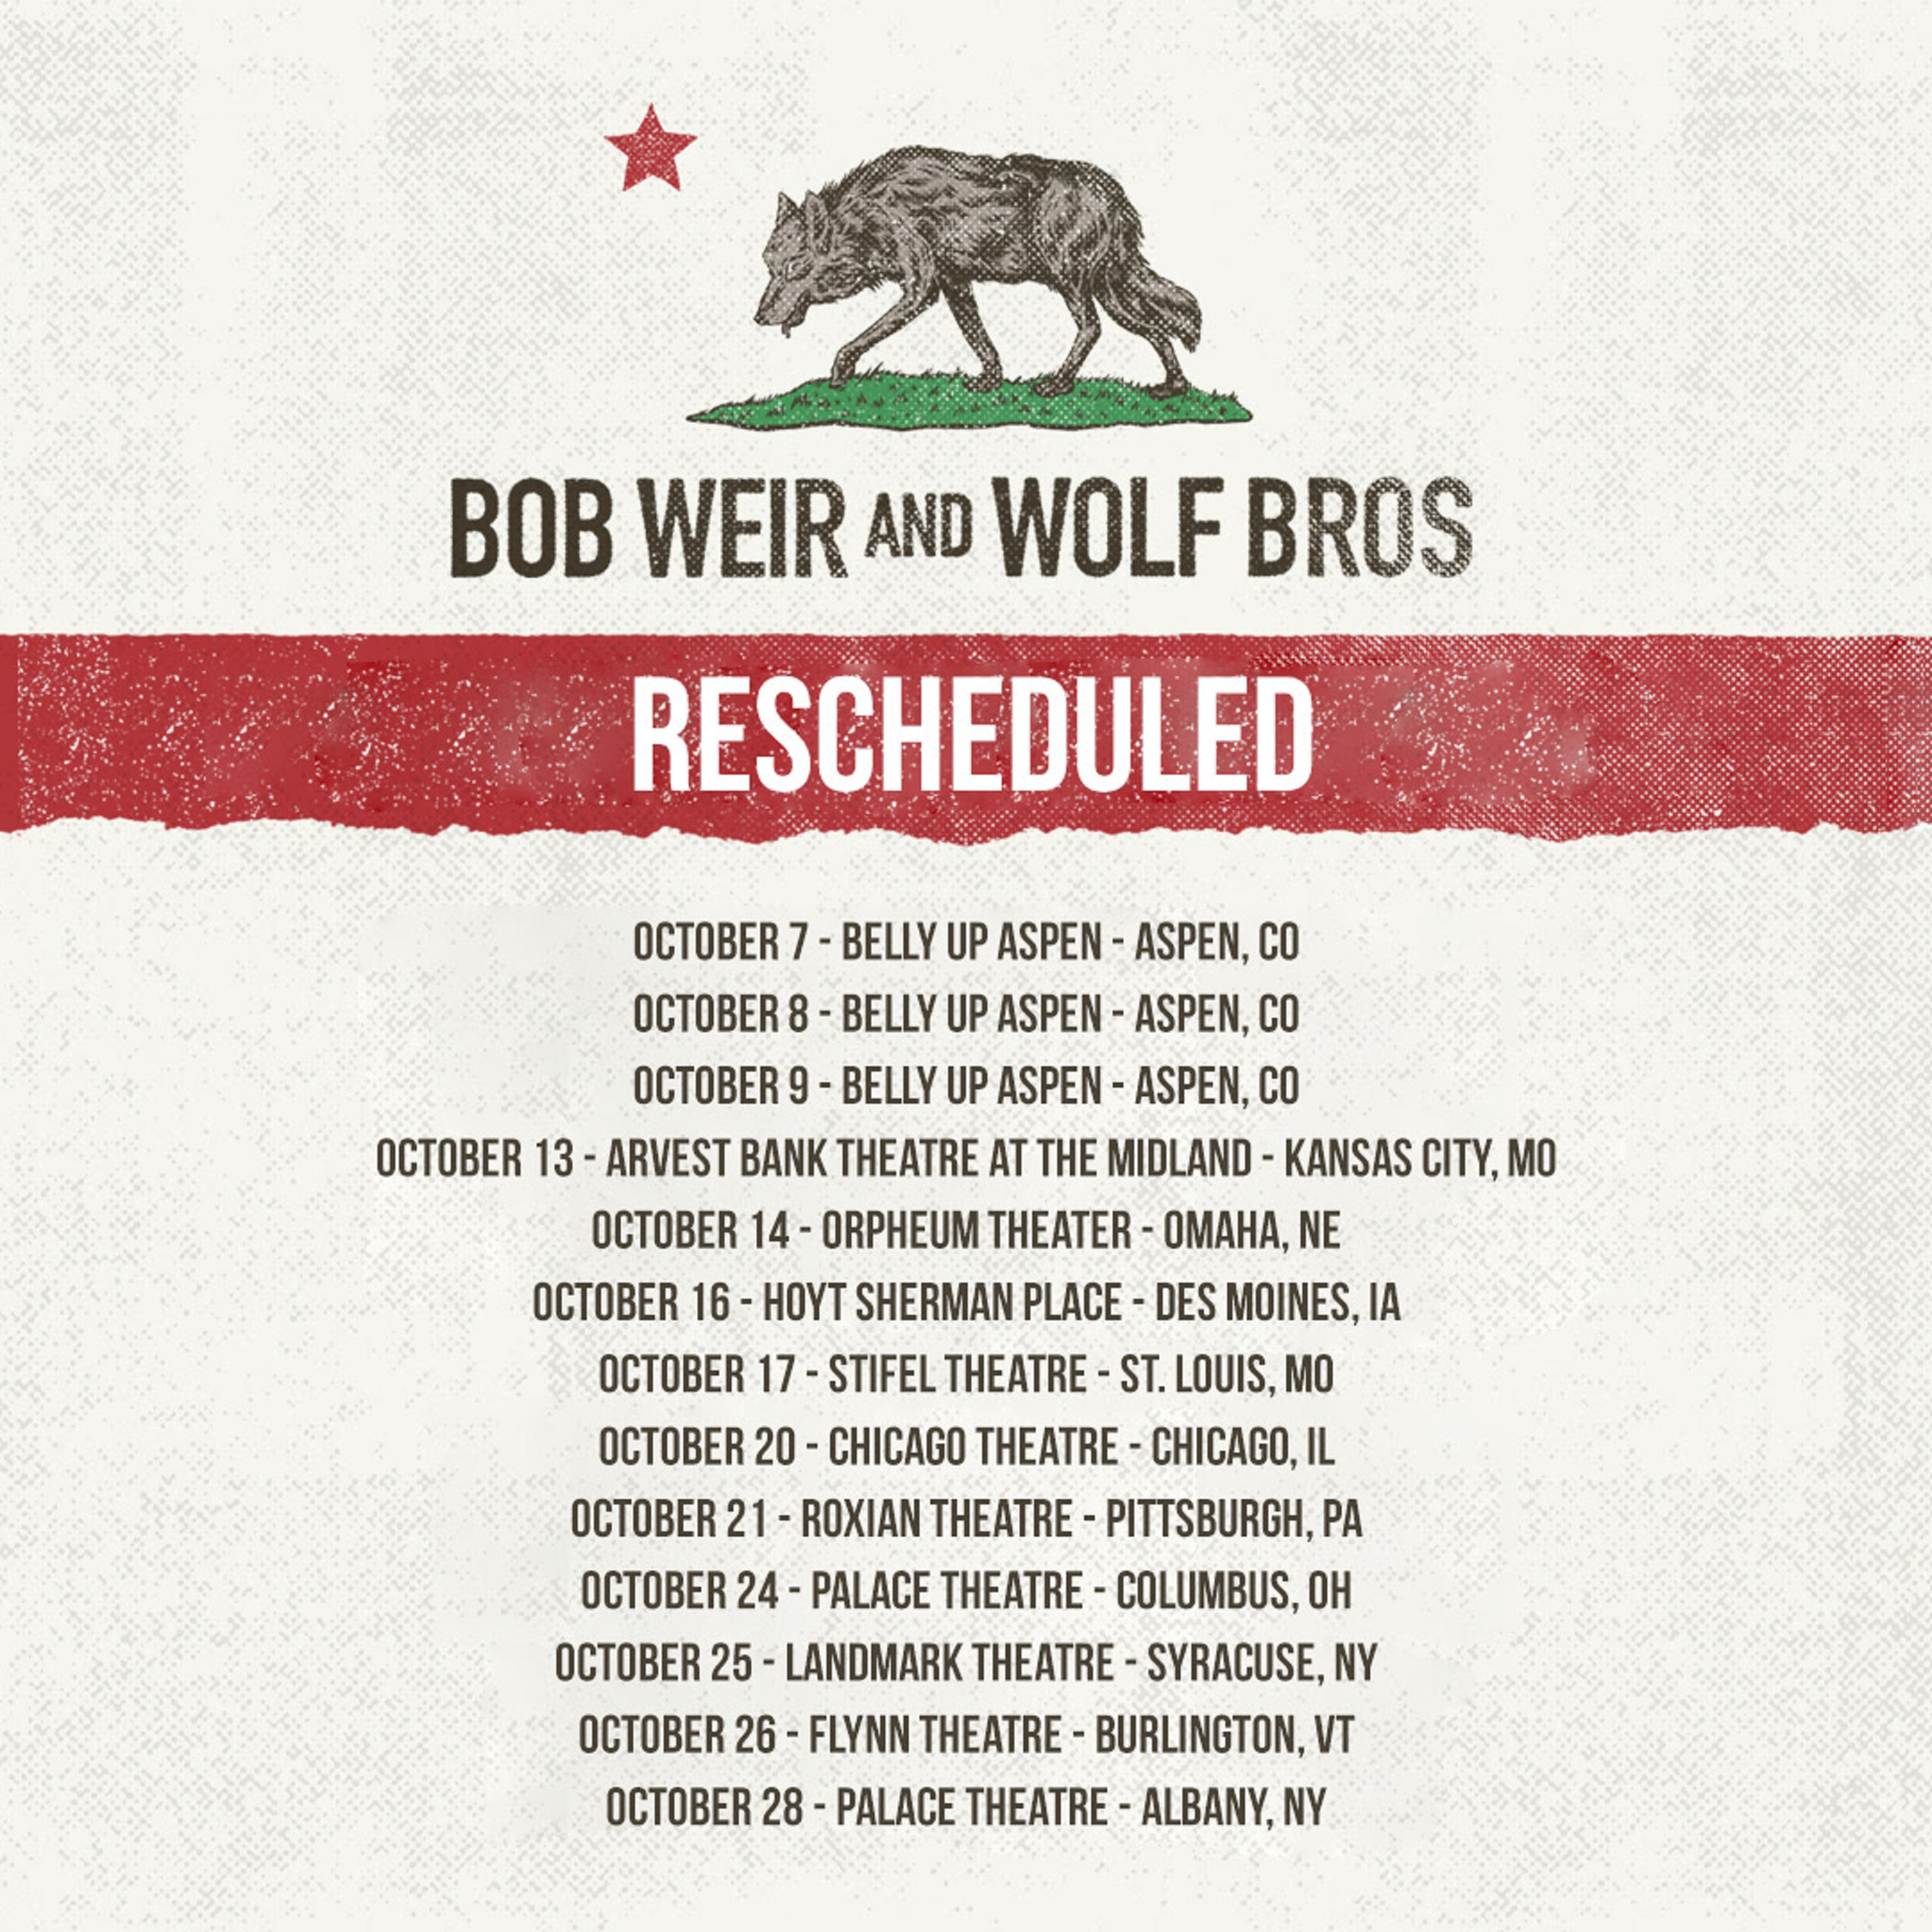 Bob Weir and Wolf Bros reschedule headlining dates